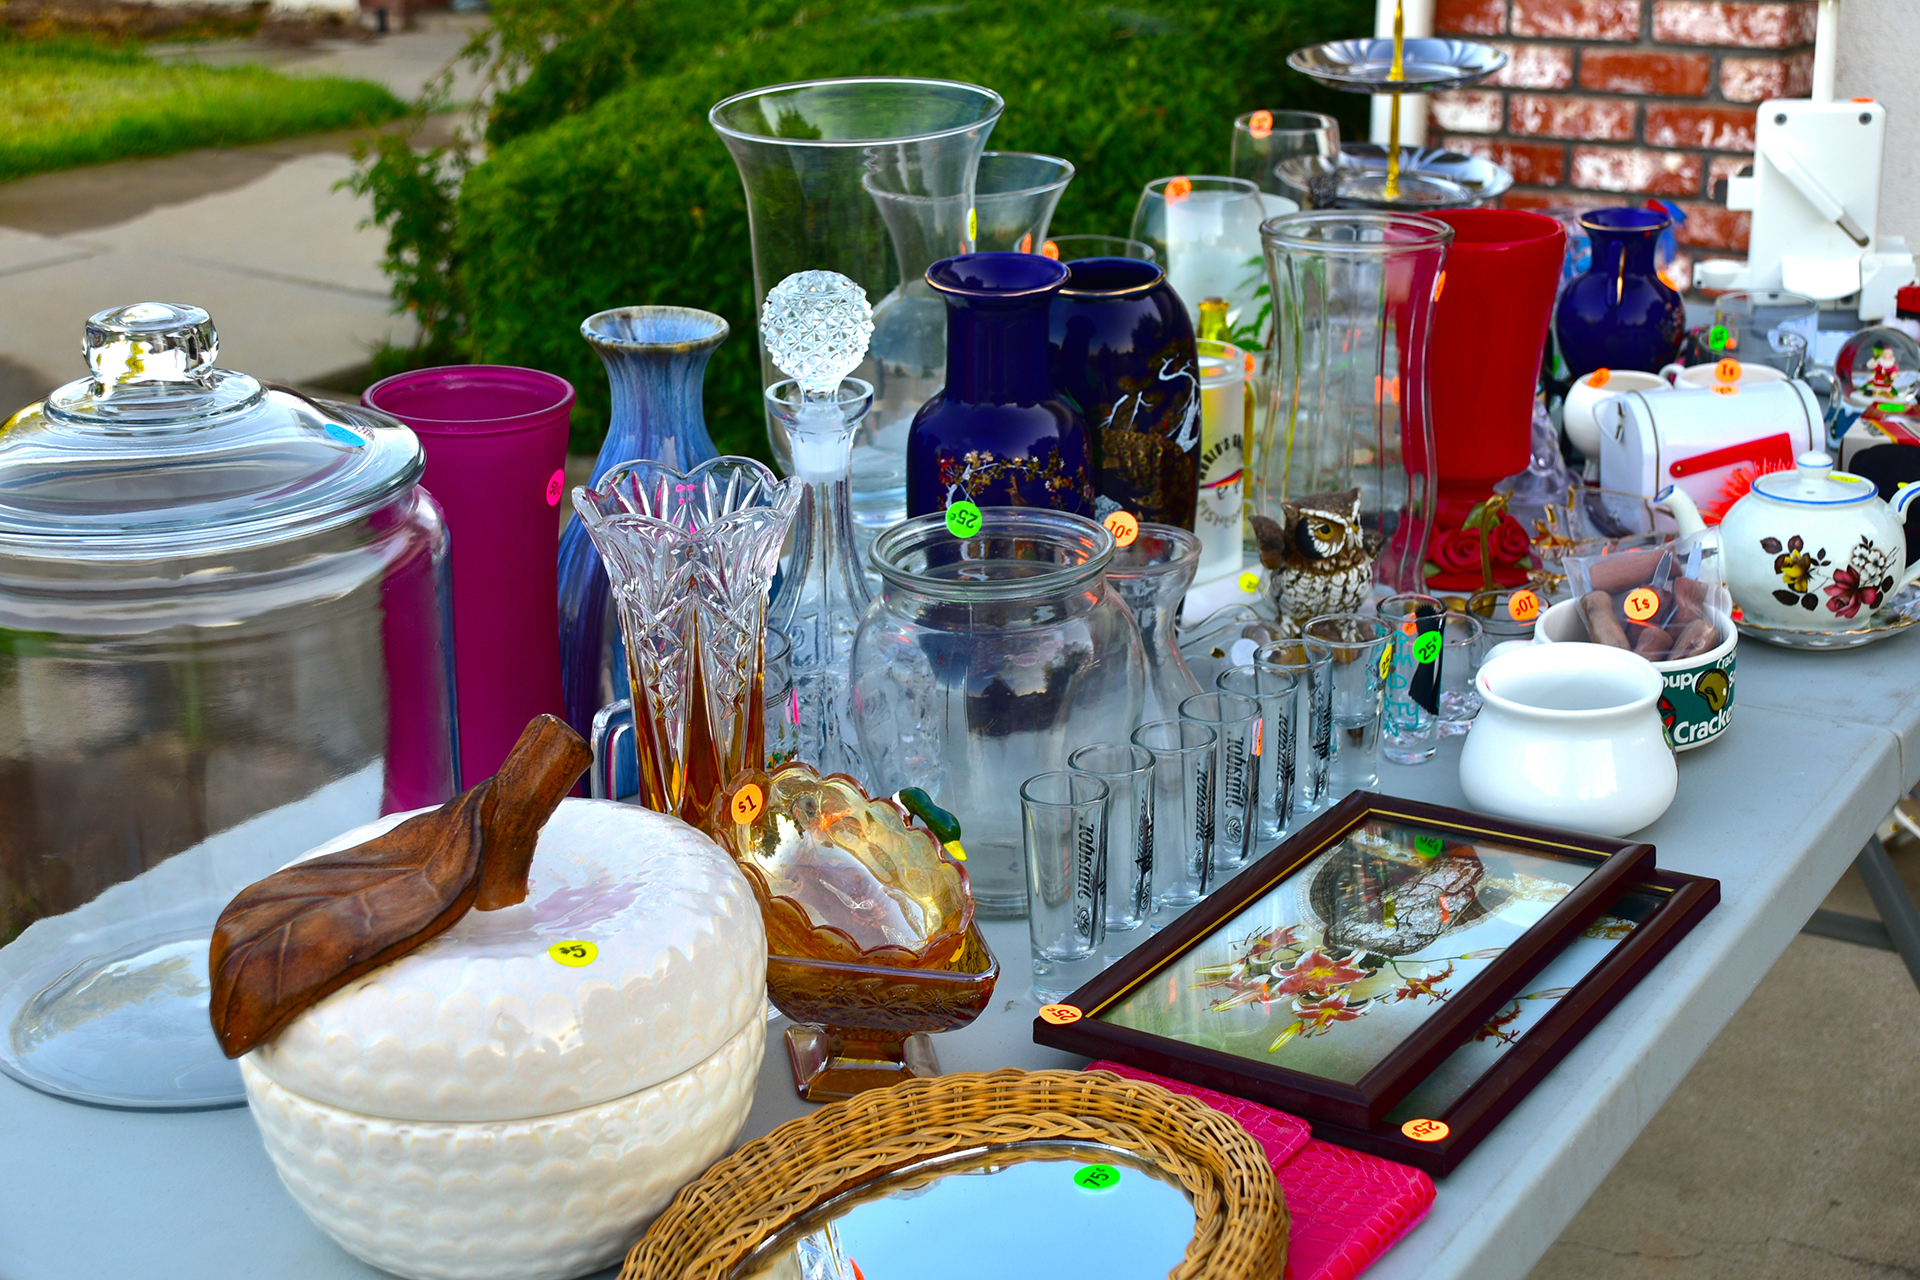 Garage sale with items priced and displayed on a table